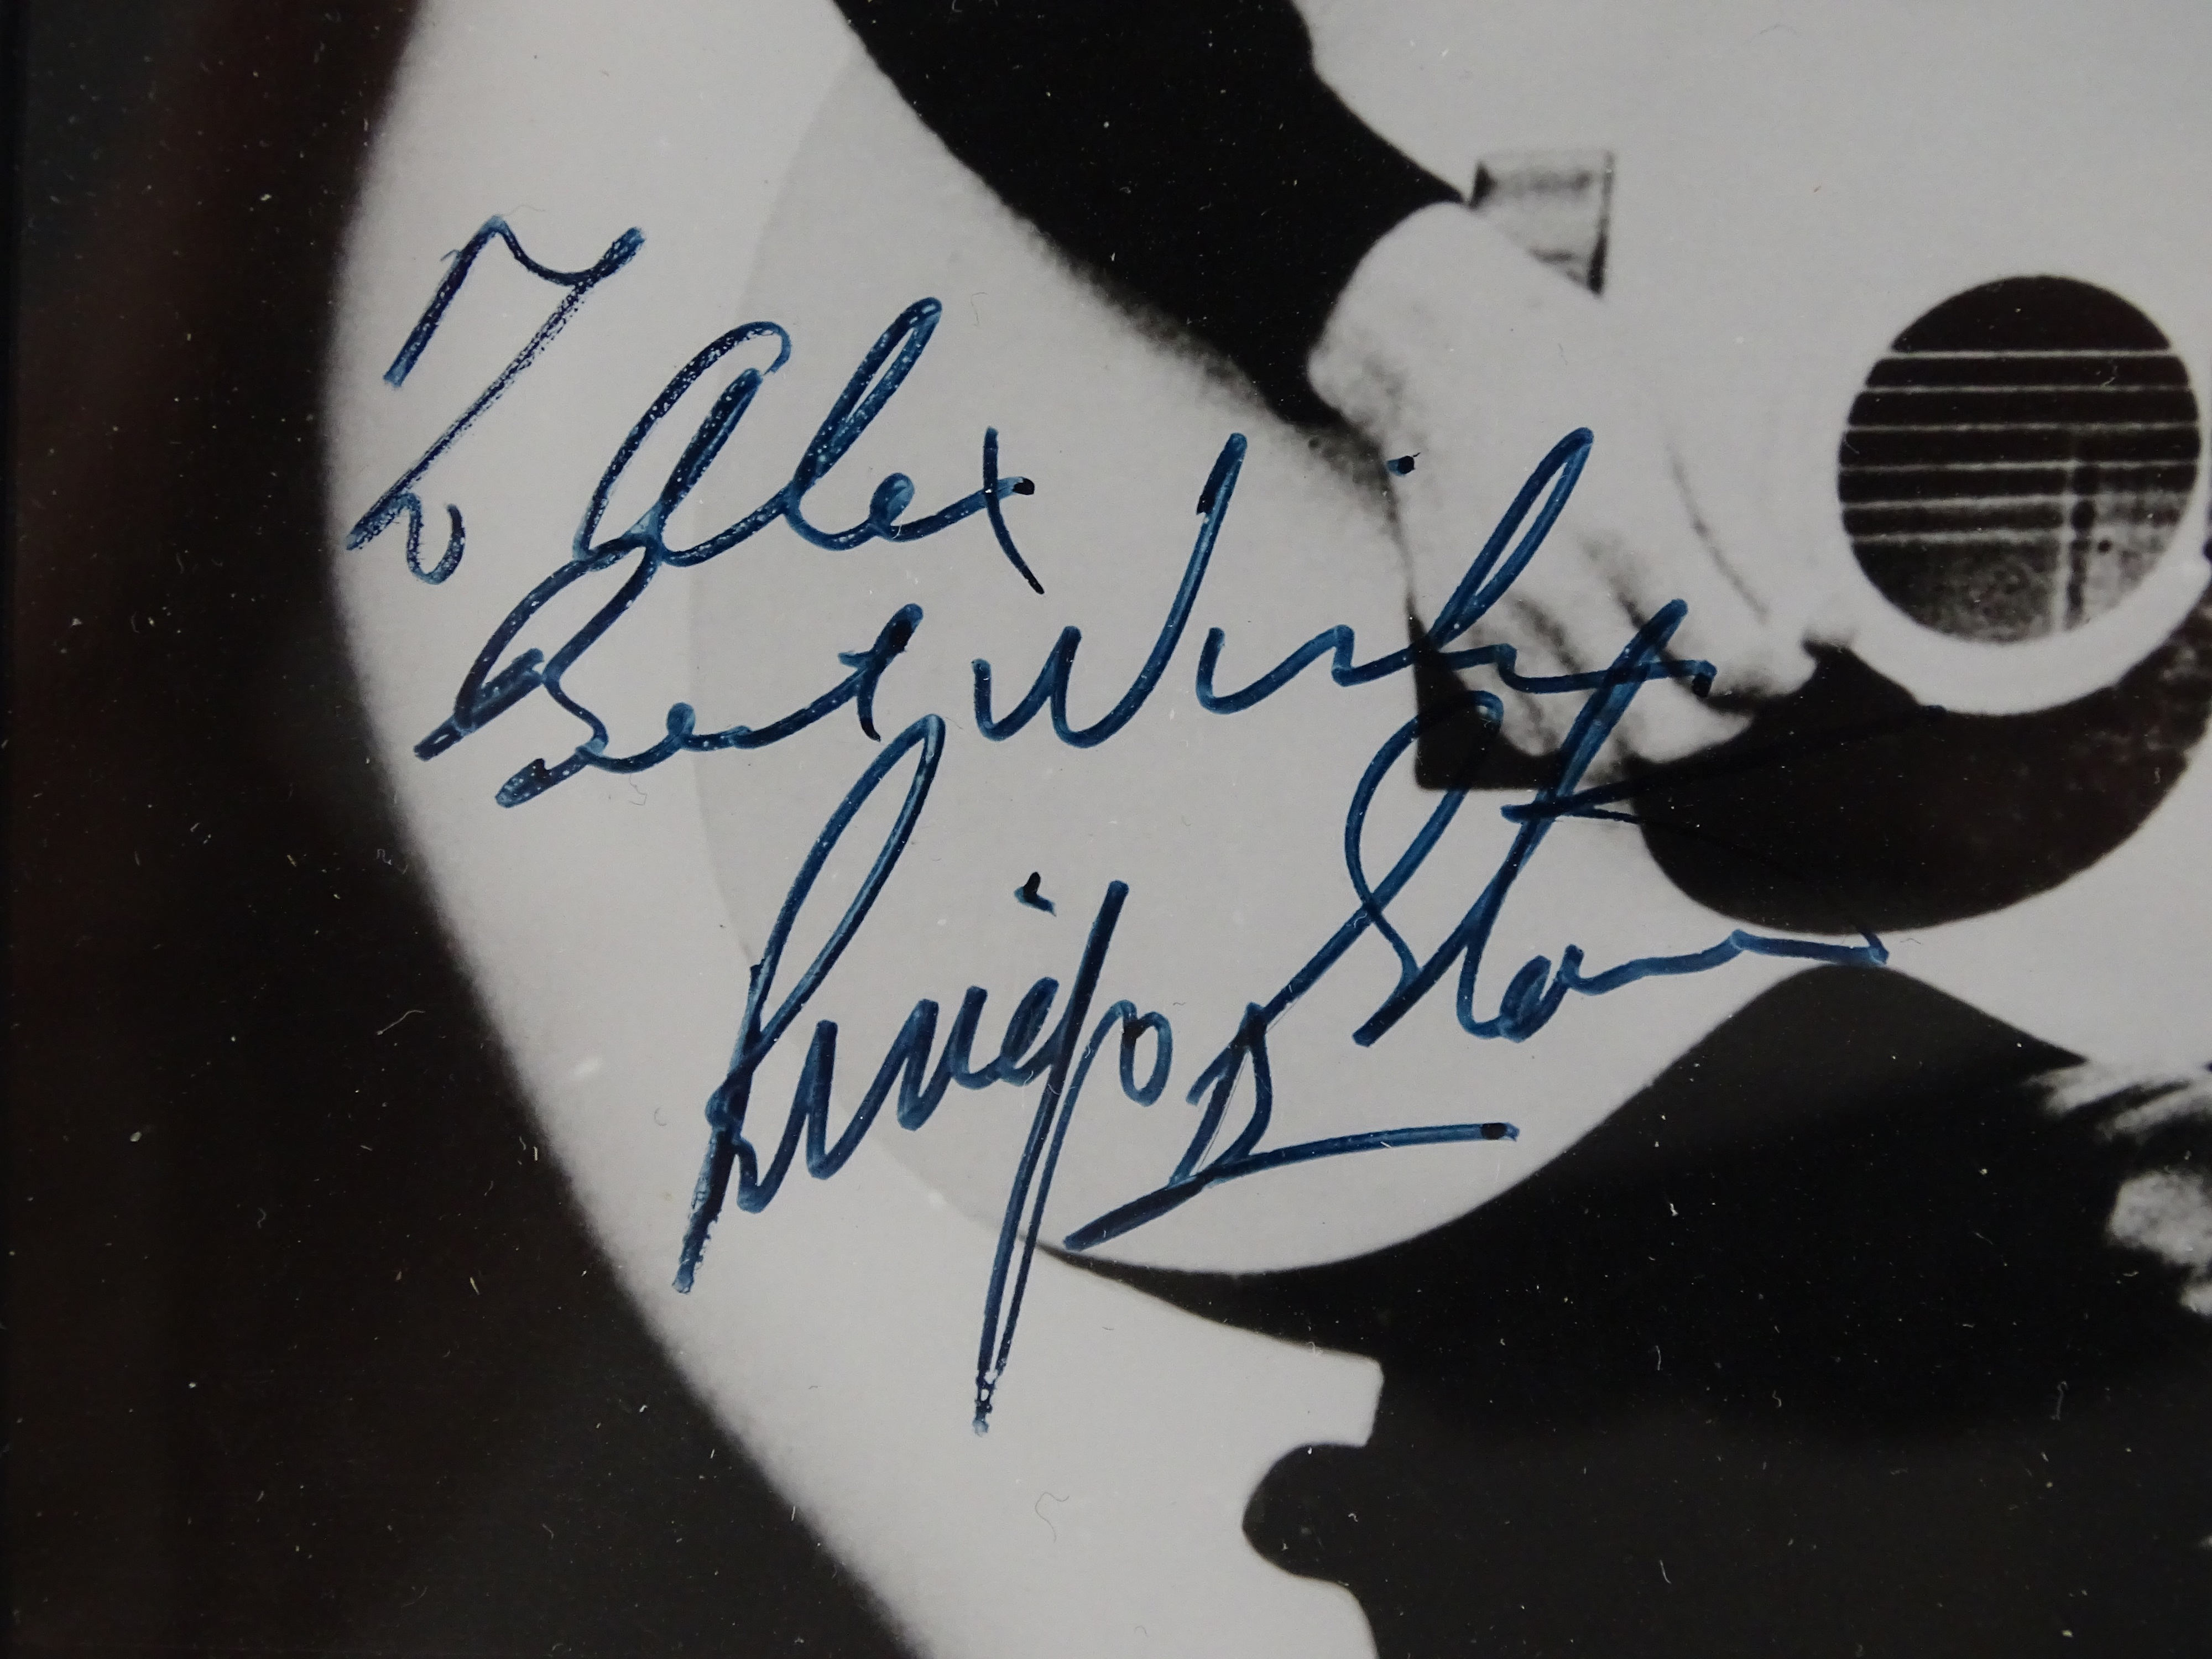 Autographs, Signed Photographs and Memorabilia Auction Results